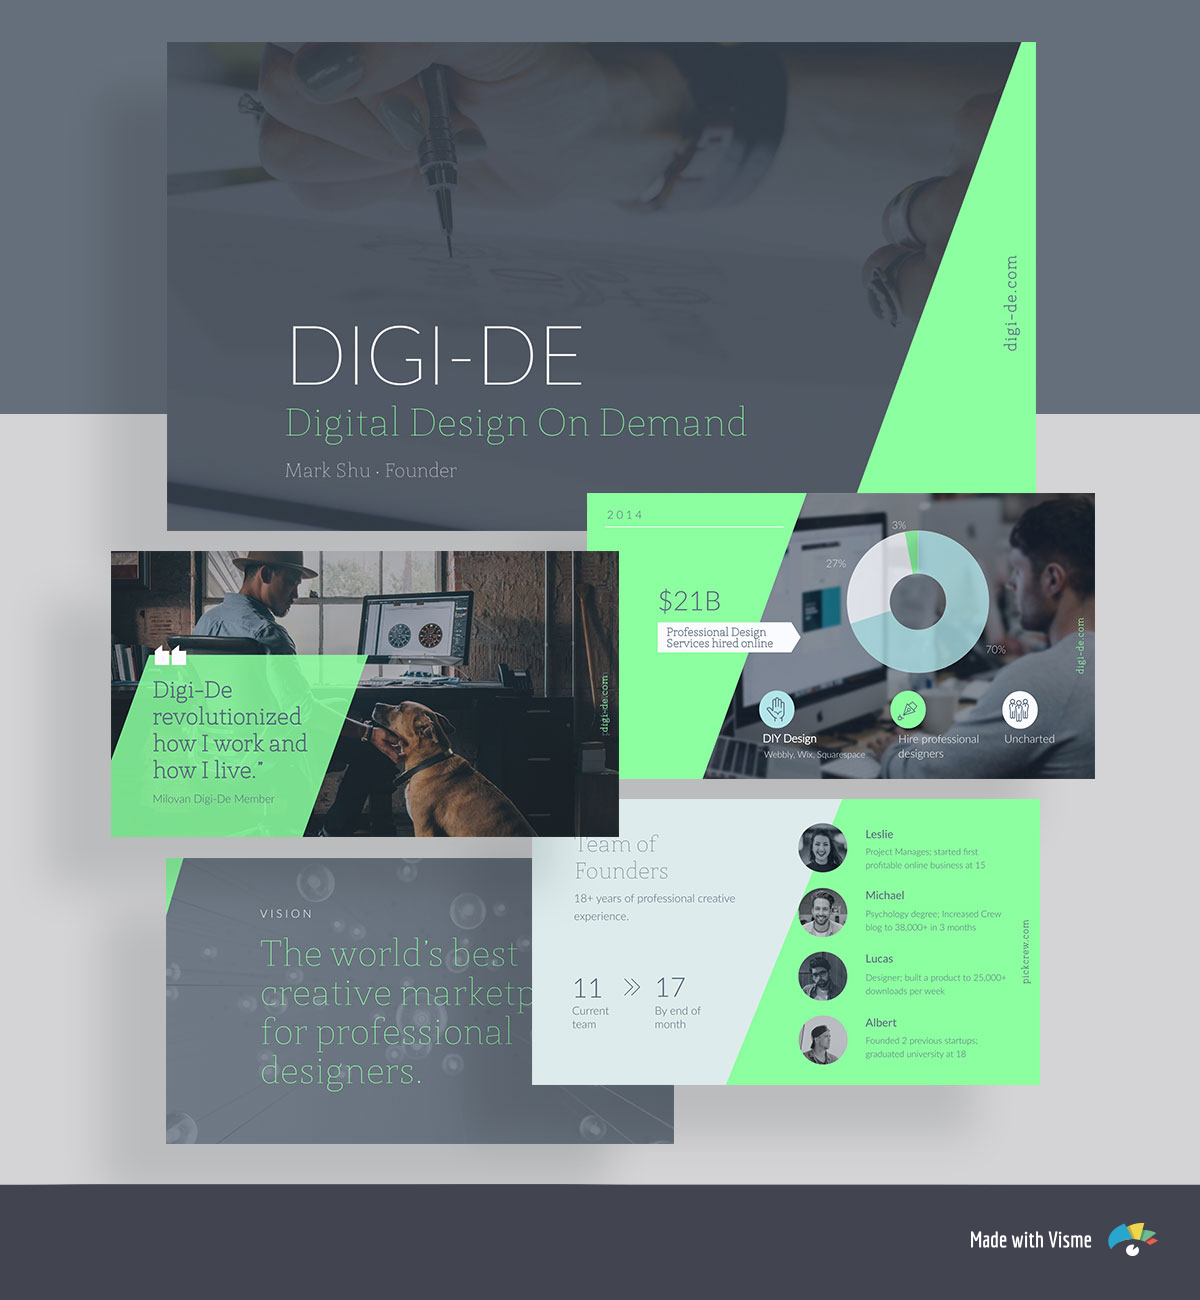 A collage of green and gray pitch deck template slides with business images, headshots and a donut chart